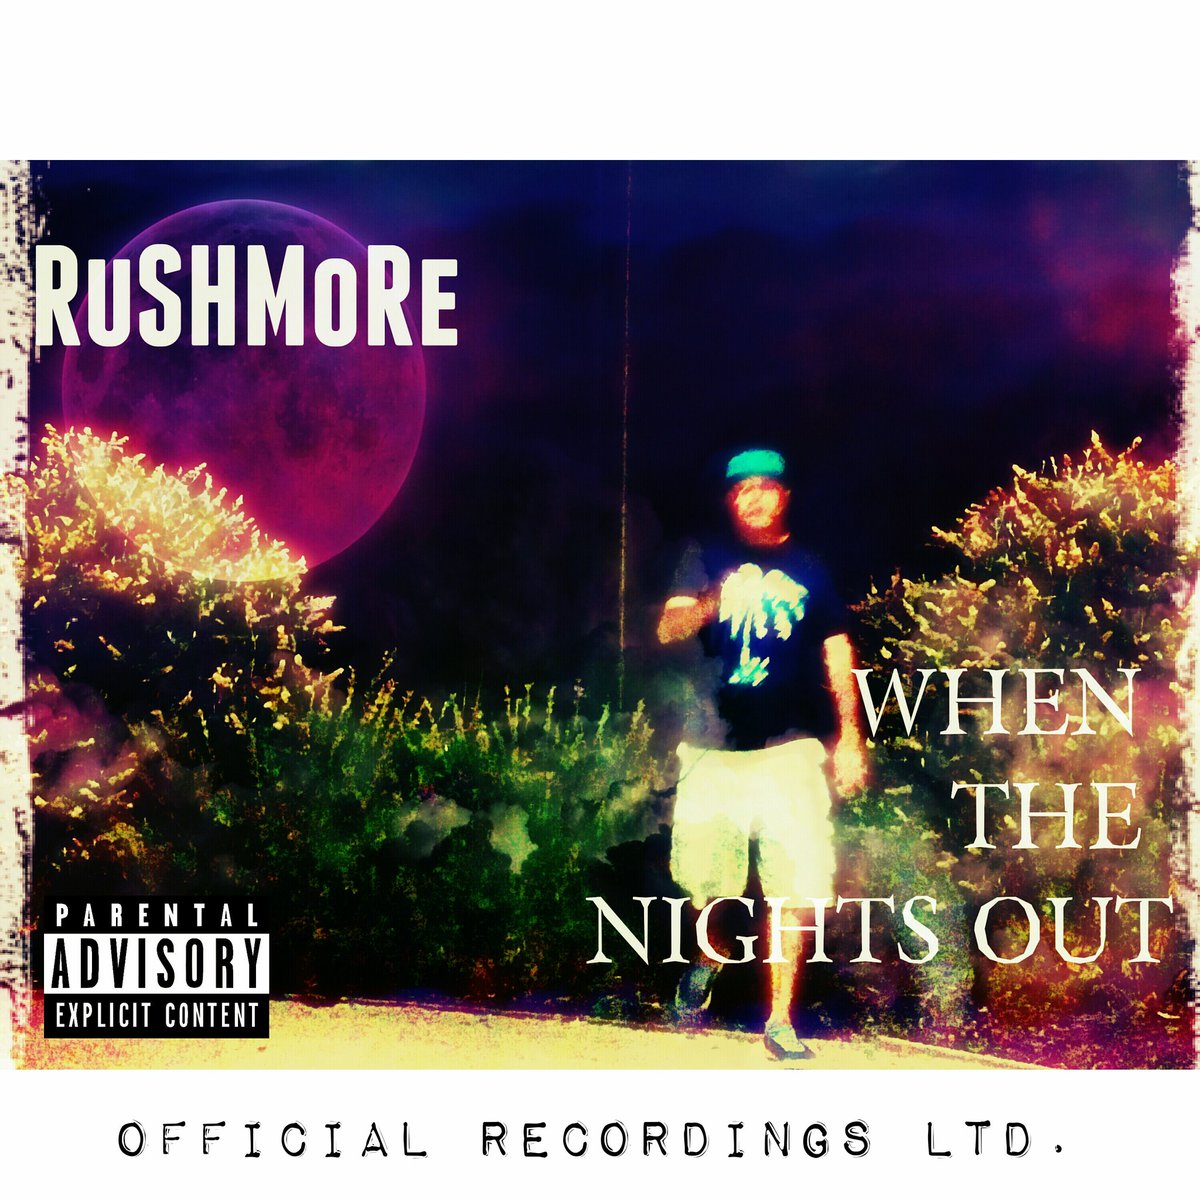 New Album: @RUSHMOREBEATS  - &quot;When The Nights Out&quot;  Coming Soon!   Check Out The  Album Cover Below   #HipHop #Official #BoomBap #NewMusic<br>http://pic.twitter.com/P7gphm0TVF